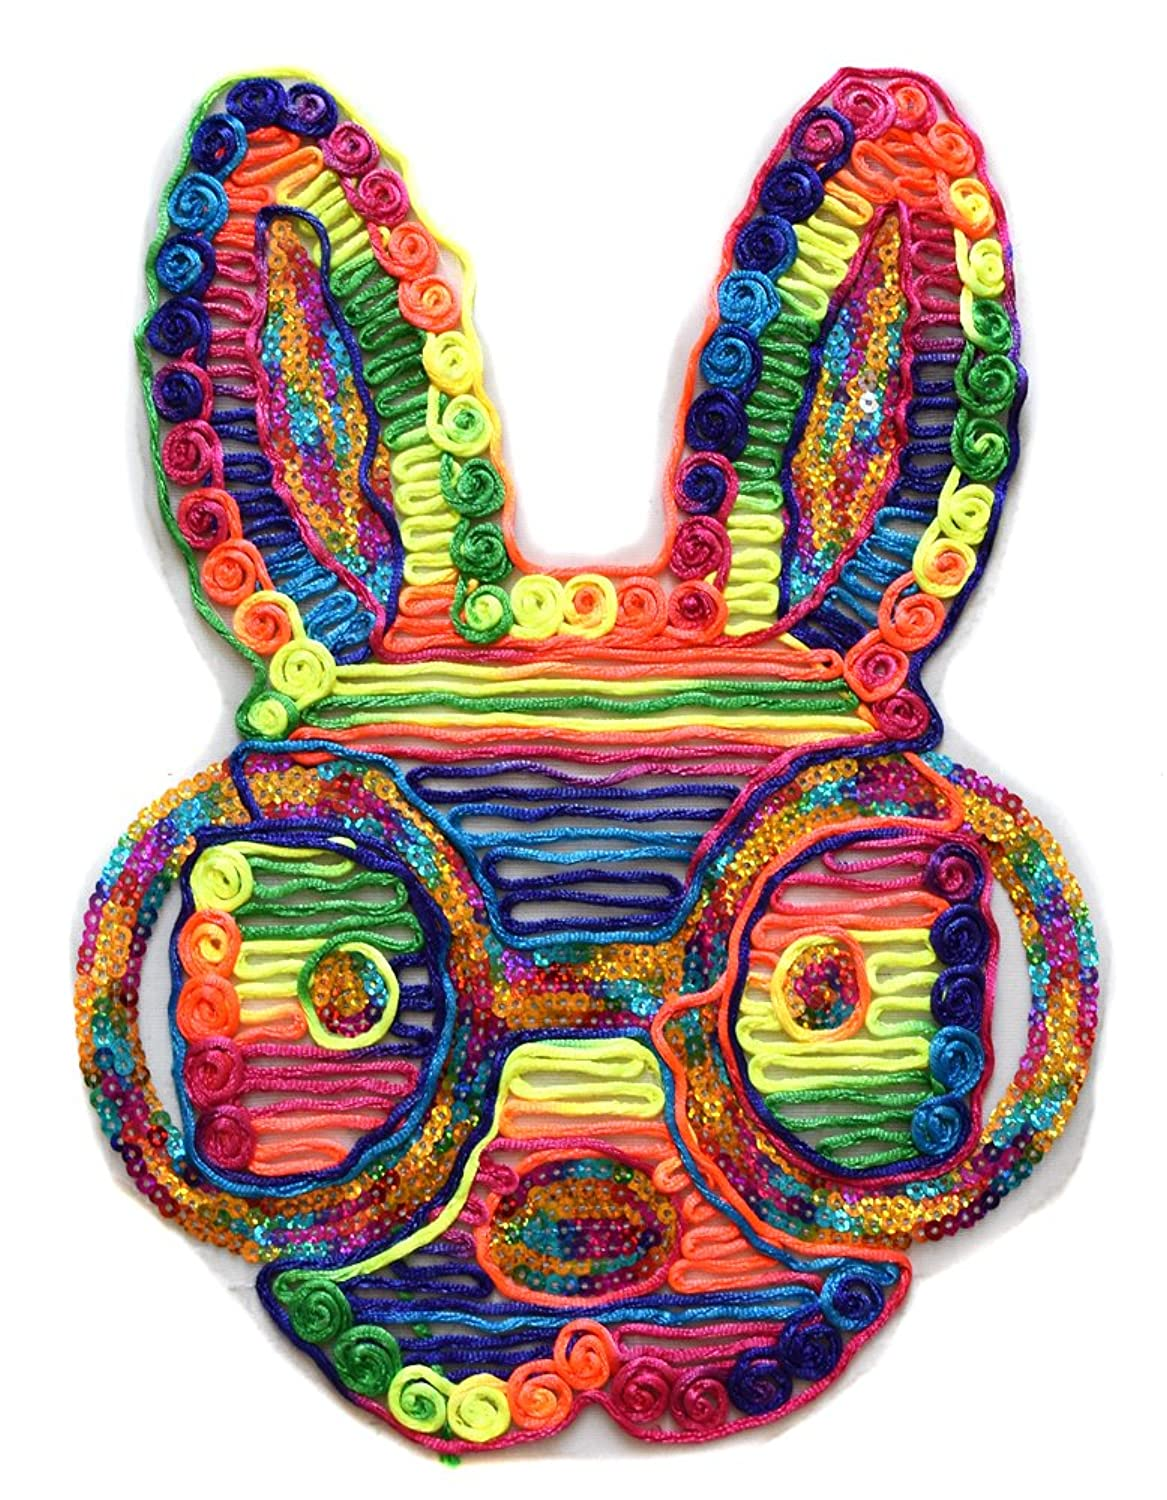 ecusson lapin bunny paillettes fluo usa 33x23cm patche badge paillete sur toile tulle